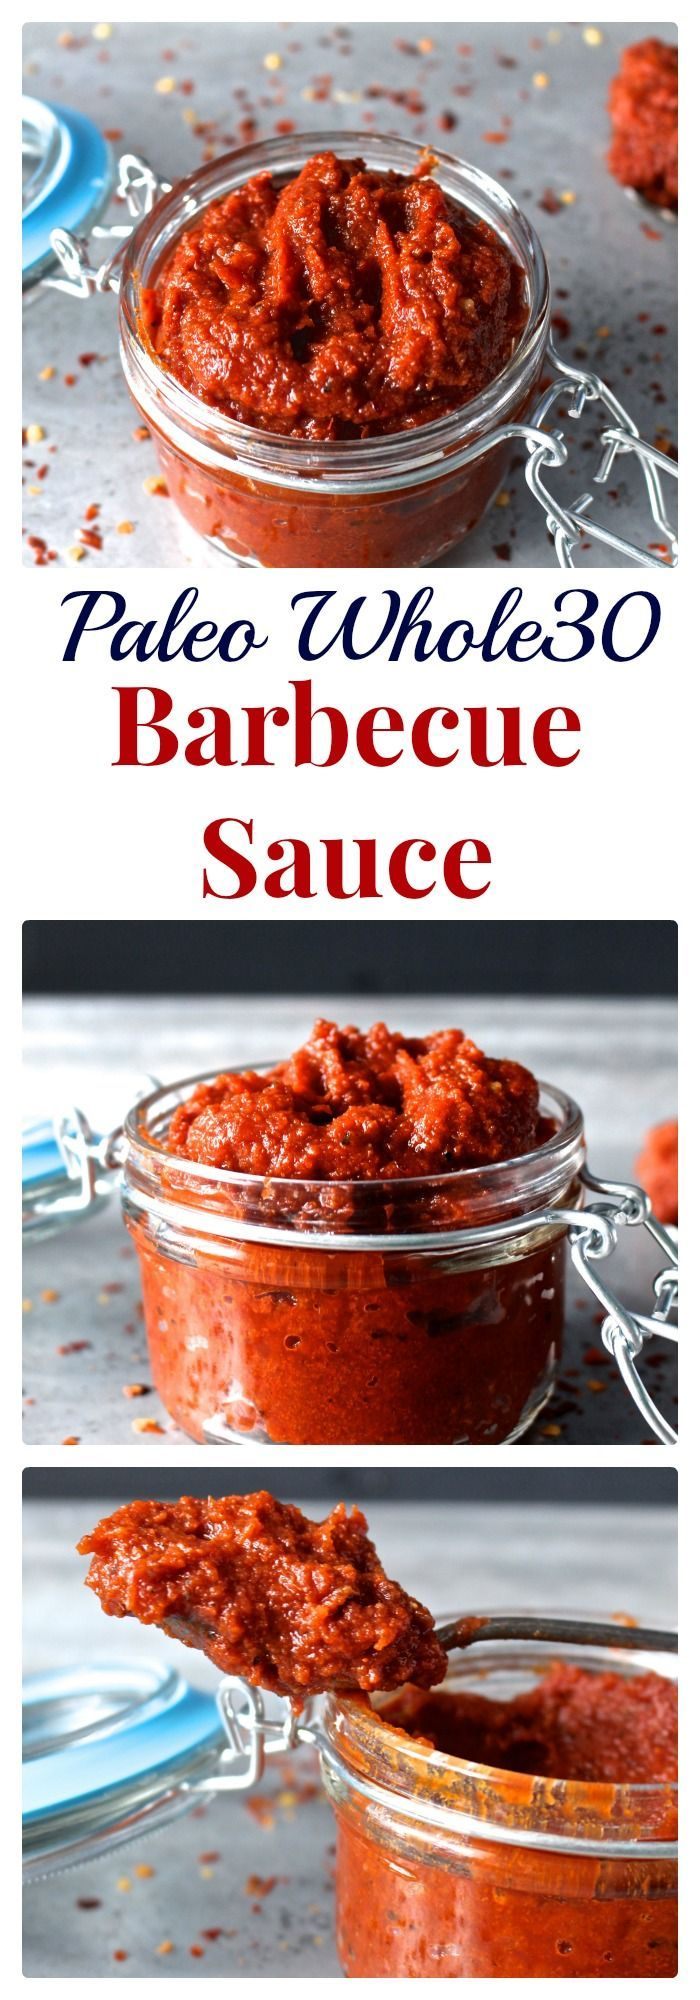 Paleo Whole30 Barbecue Sauce